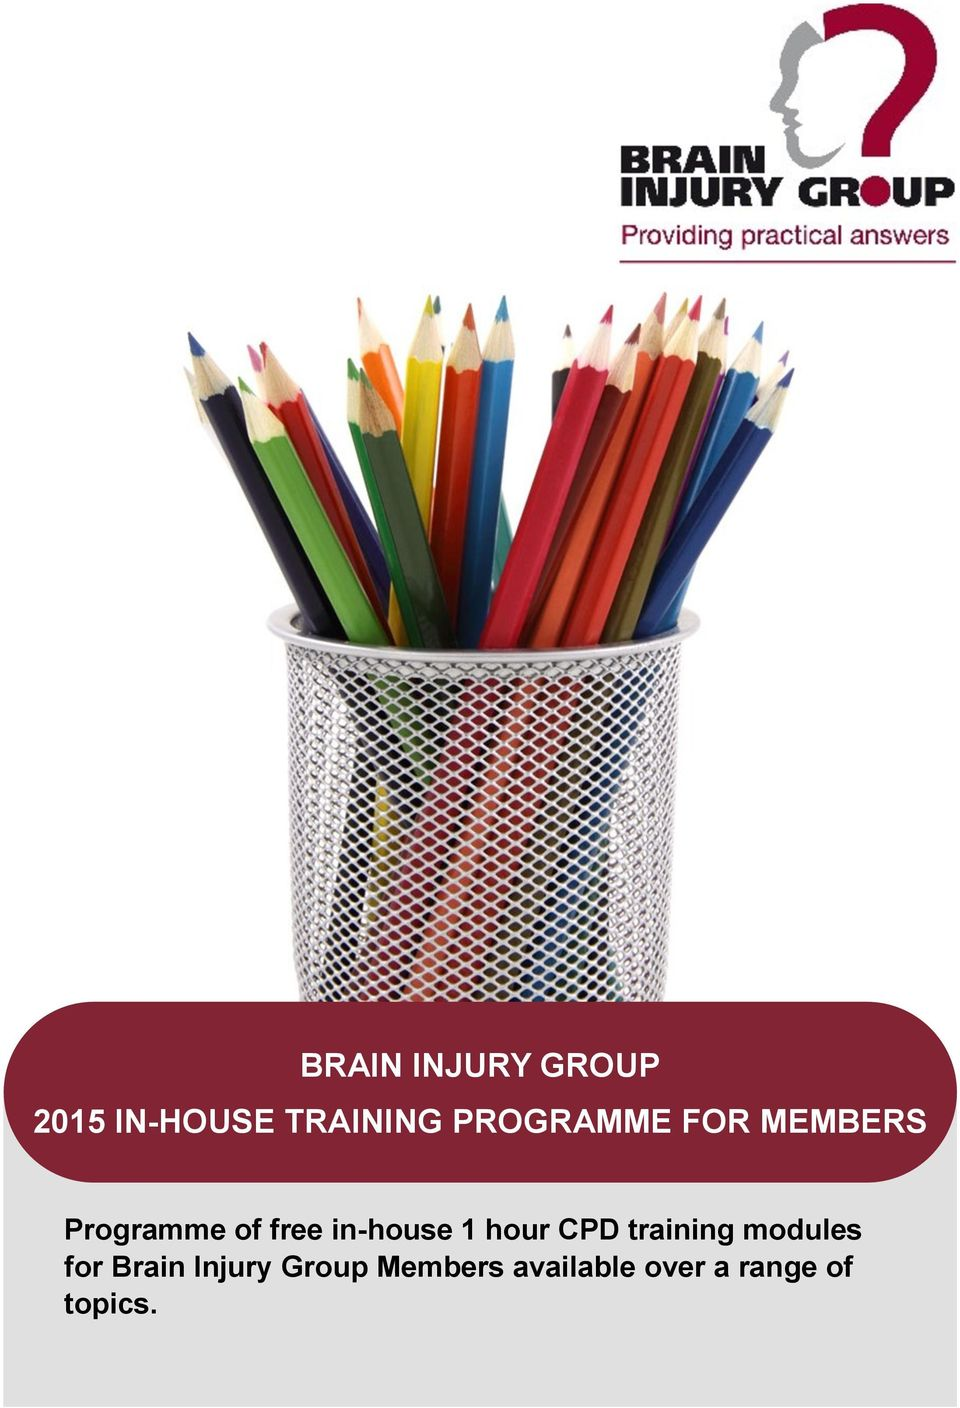 in-house 1 hour CPD training modules for